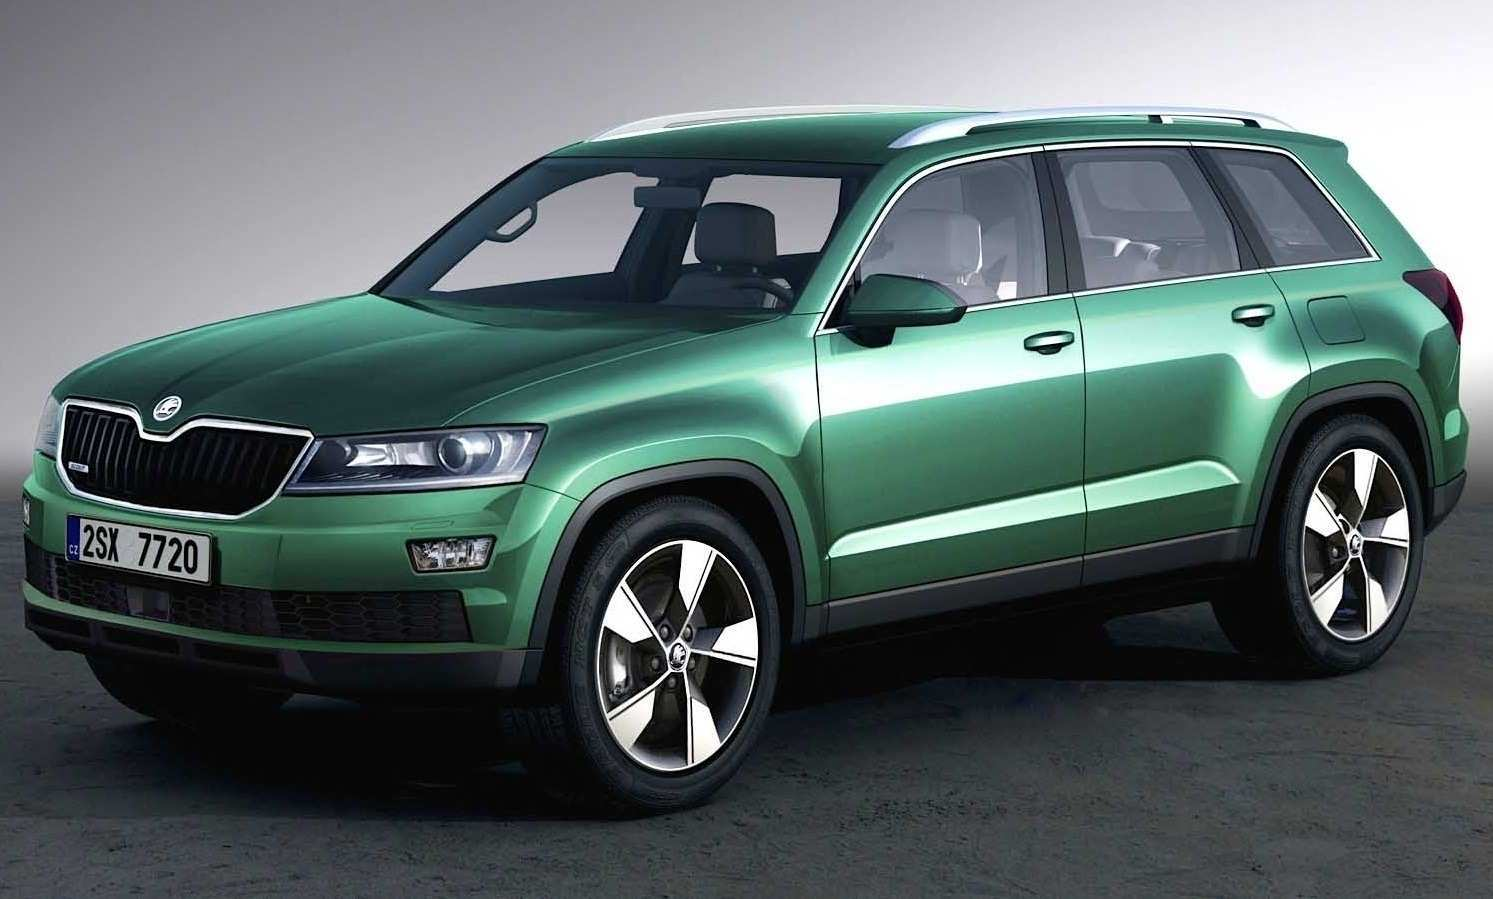 74 All New 2019 Skoda Snowman New Review for 2019 Skoda Snowman